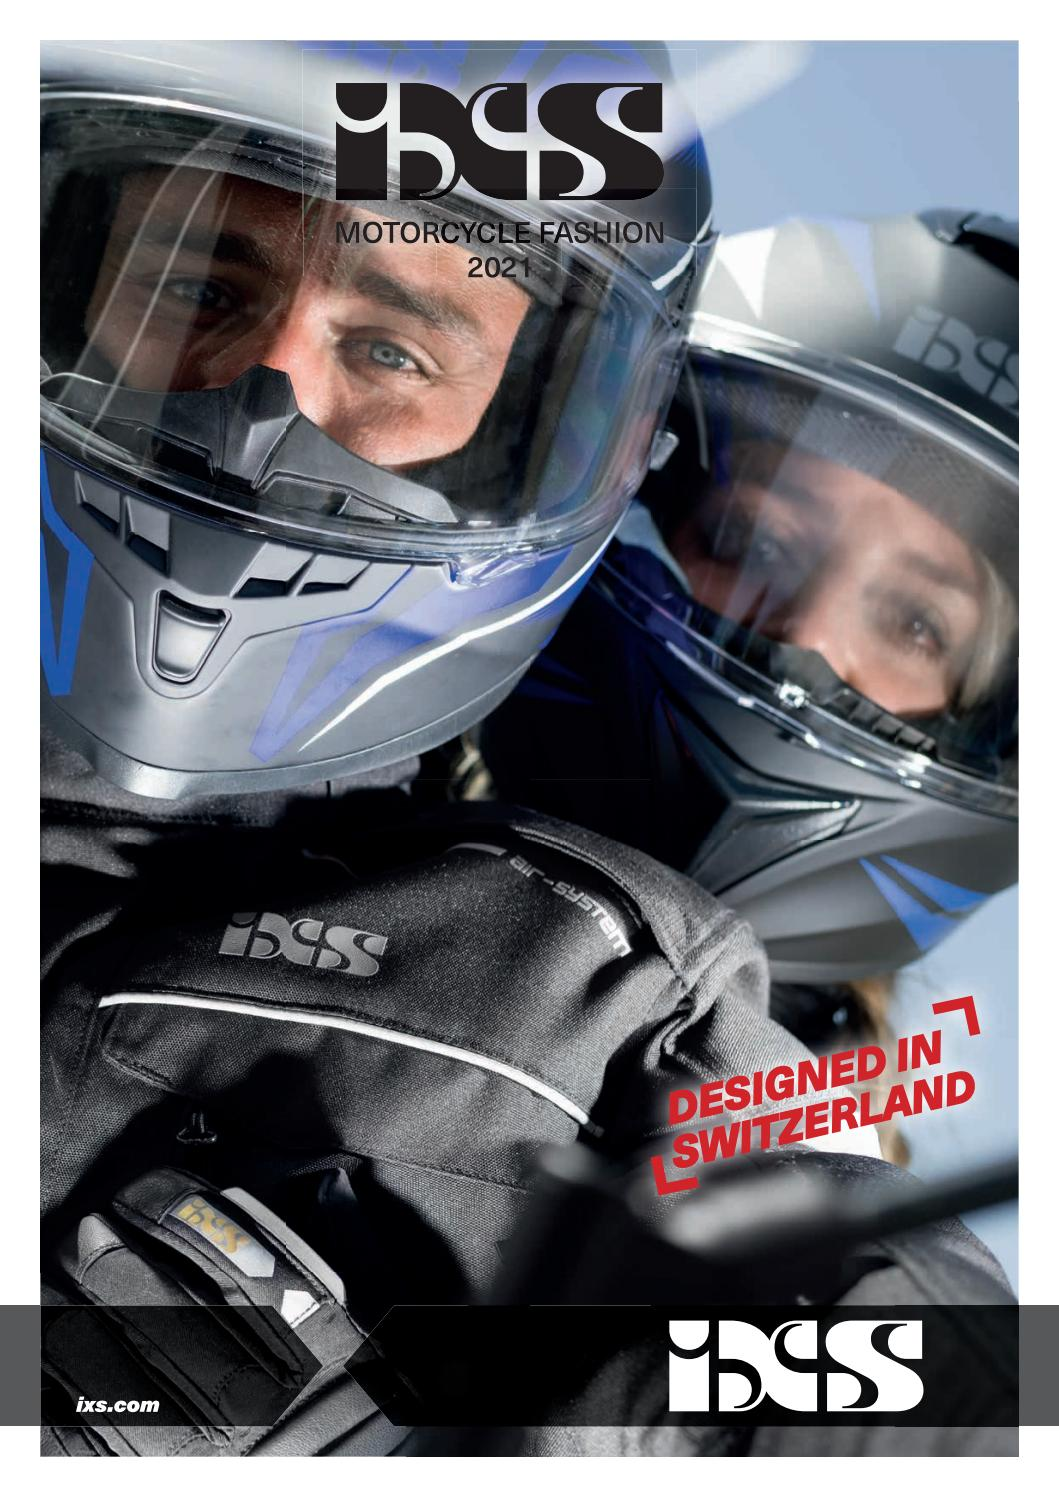 Ixs Motorcycle Fashion Catalogue 2021 English Version By Hostettler Group Issuu